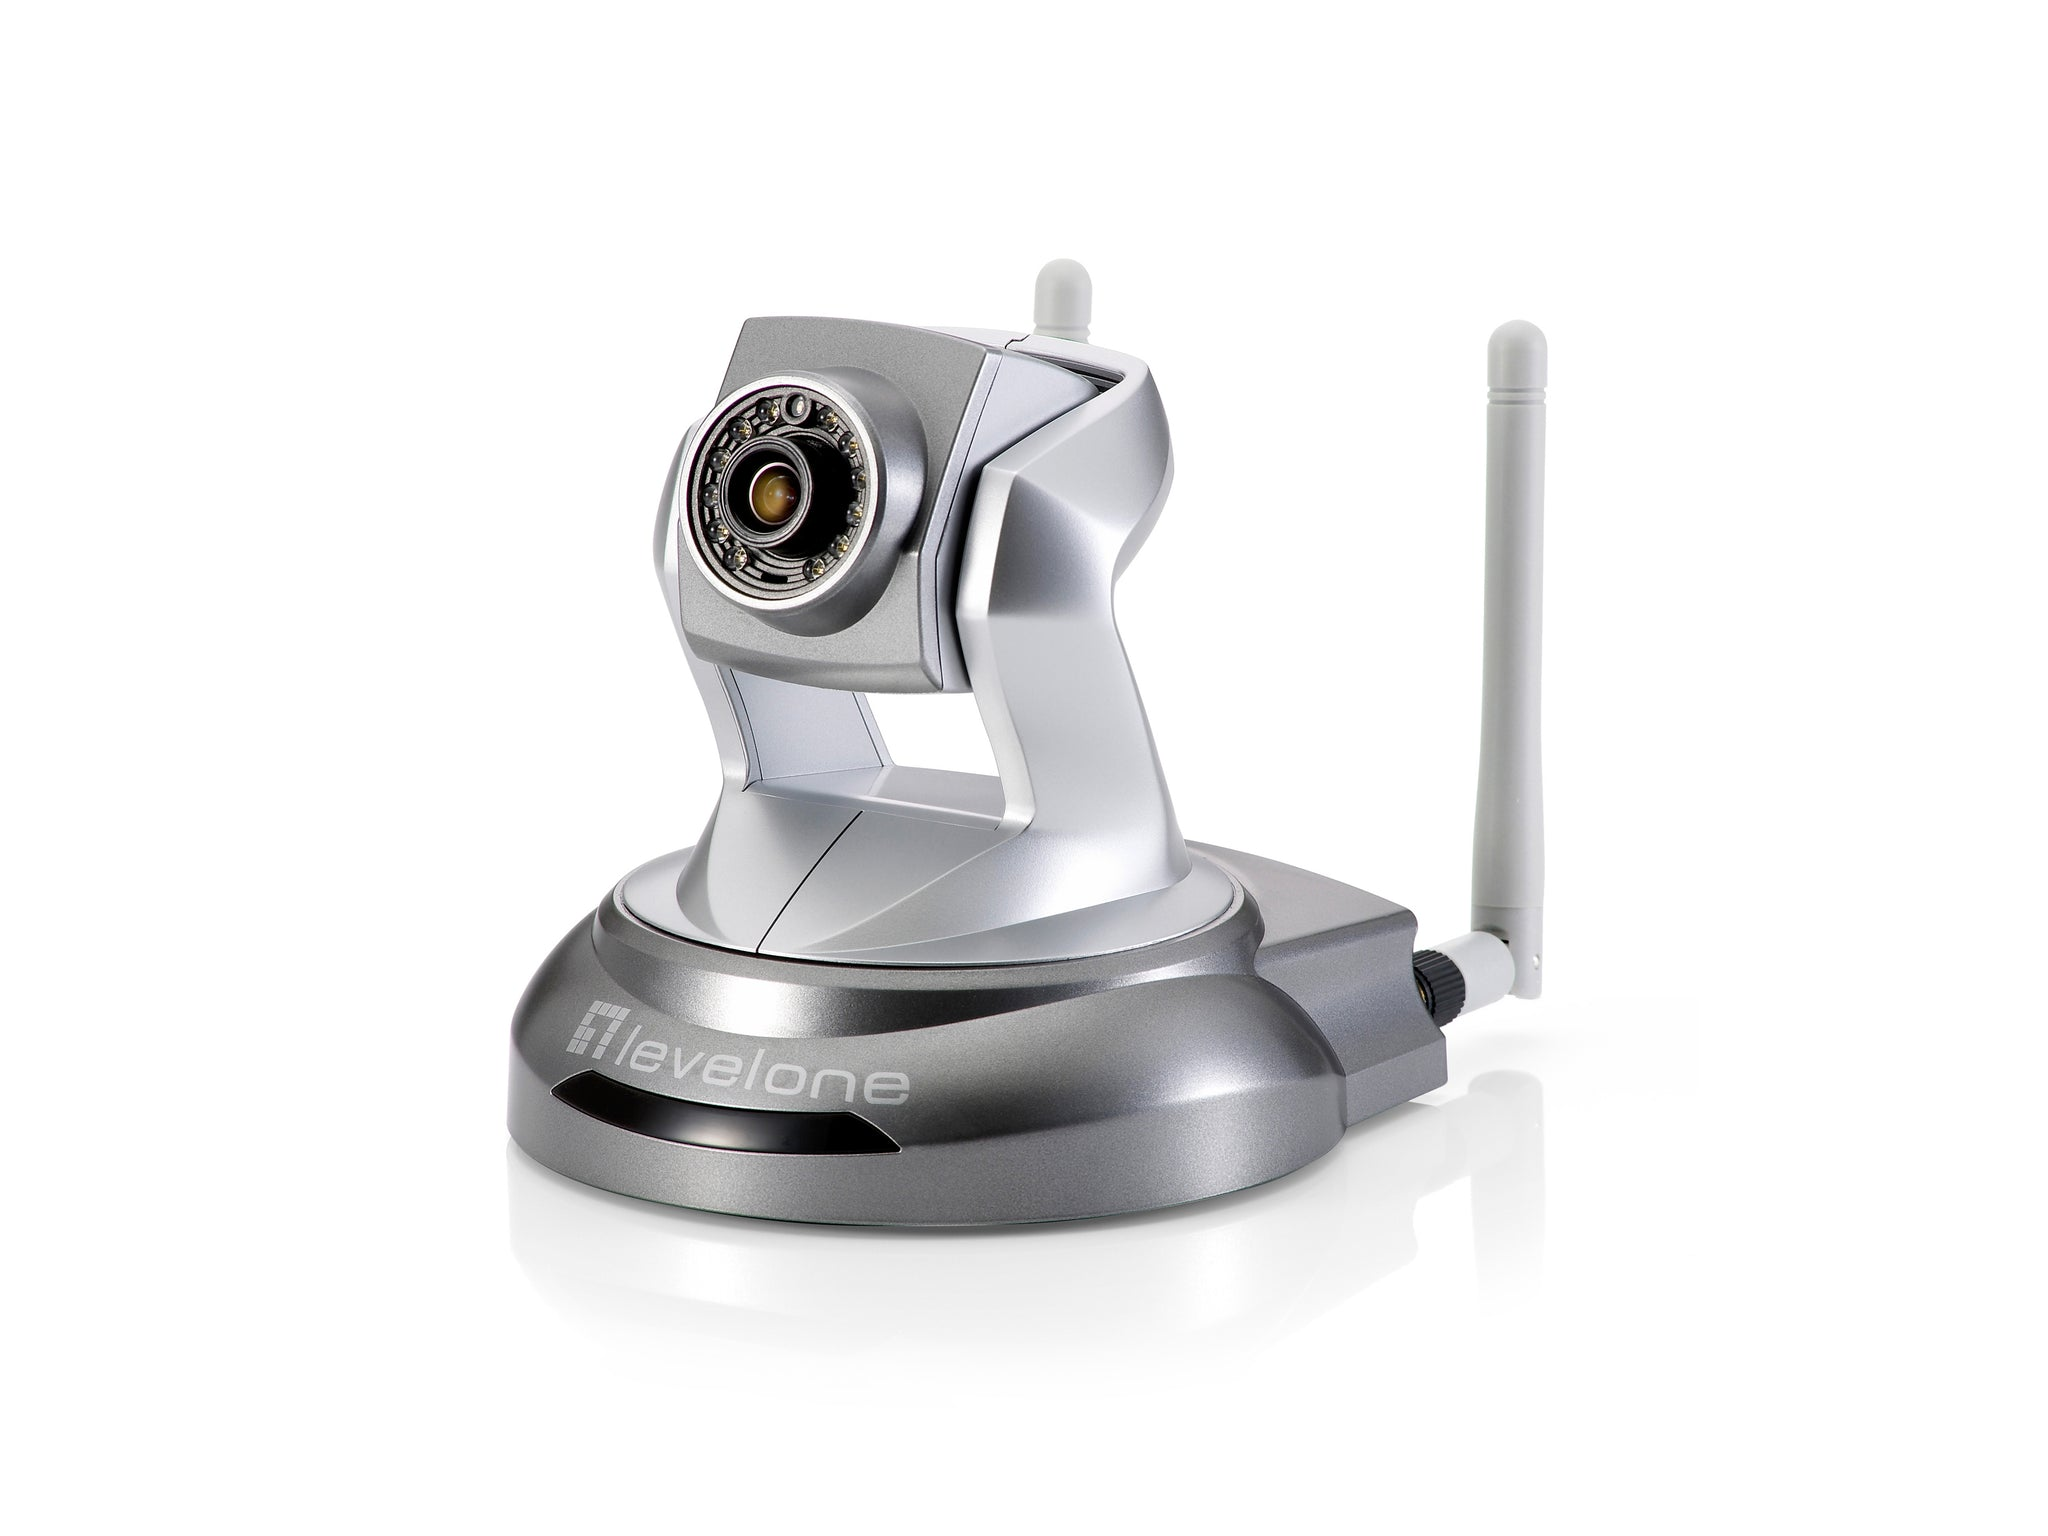 WCS-6050 5-MPX DAY/NIGHT WIRELESS P/T CAMERA